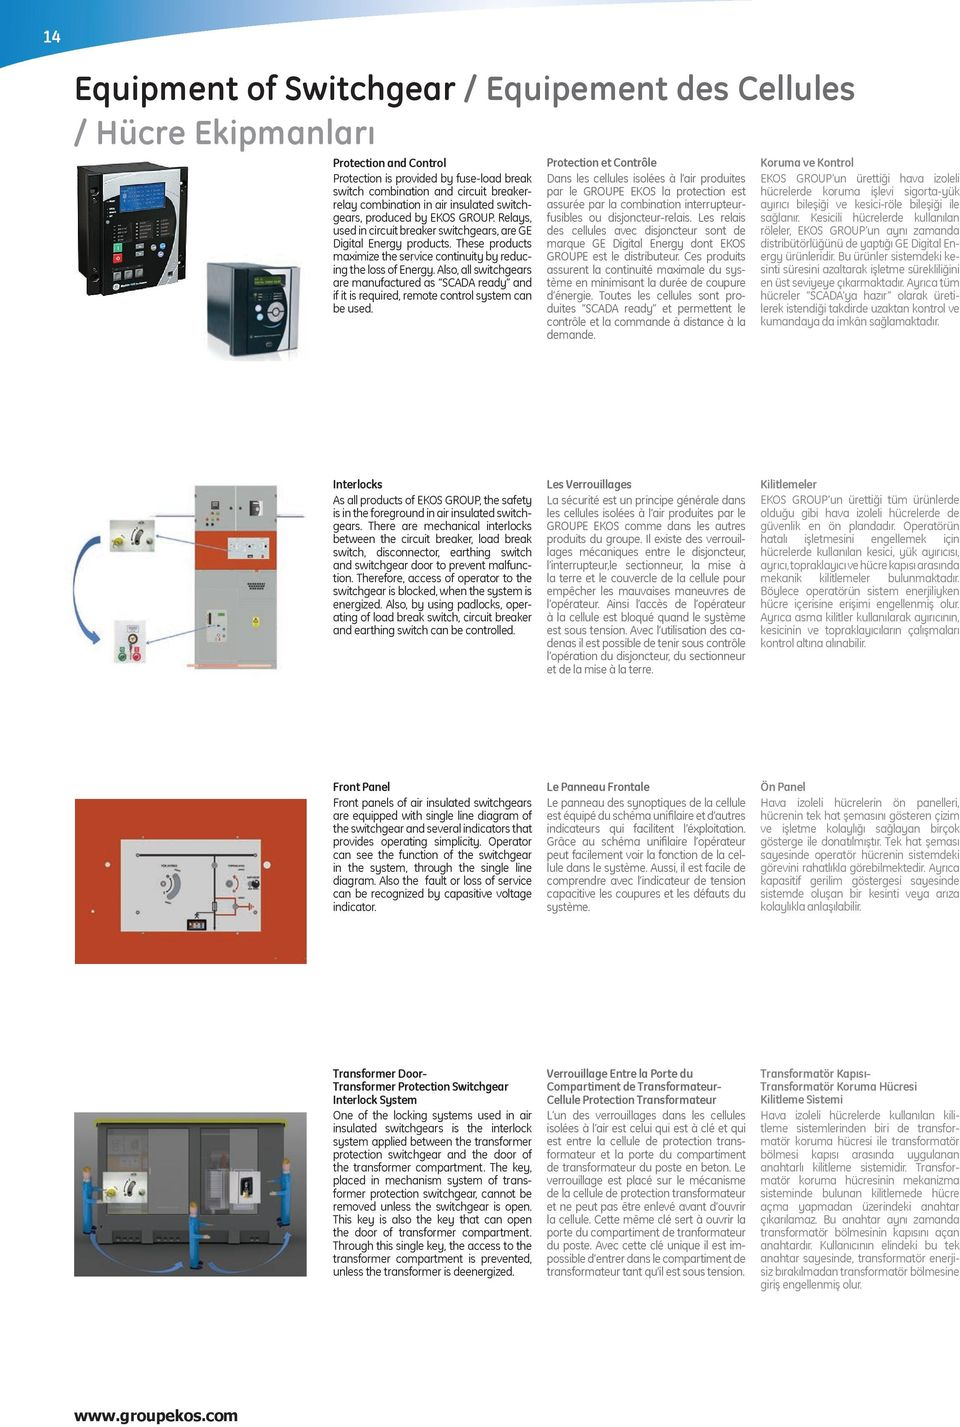 These products maximize the service continuity by reducing the loss of Energy. Also, all switchgears are manufactured as SCADA ready and if it is required, remote control system can be used.